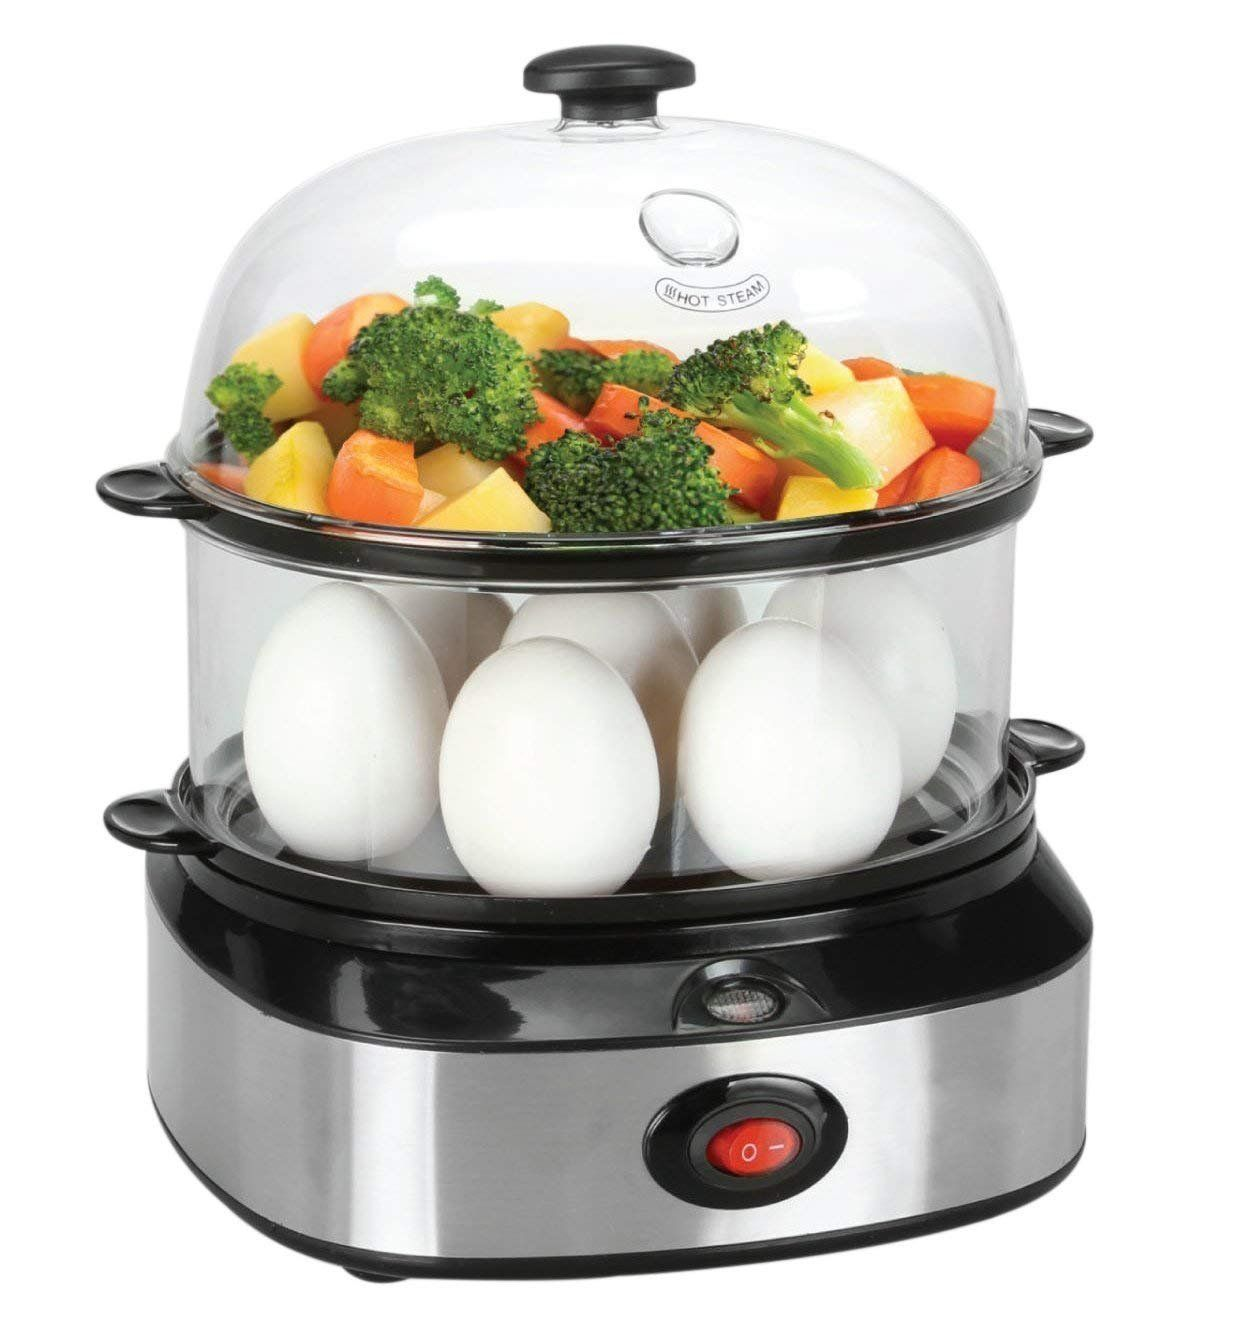 lovely novelty pick up novelty items just for your amazing online shopping steamer recipes egg cookers how to cook eggs steamer recipes egg cookers